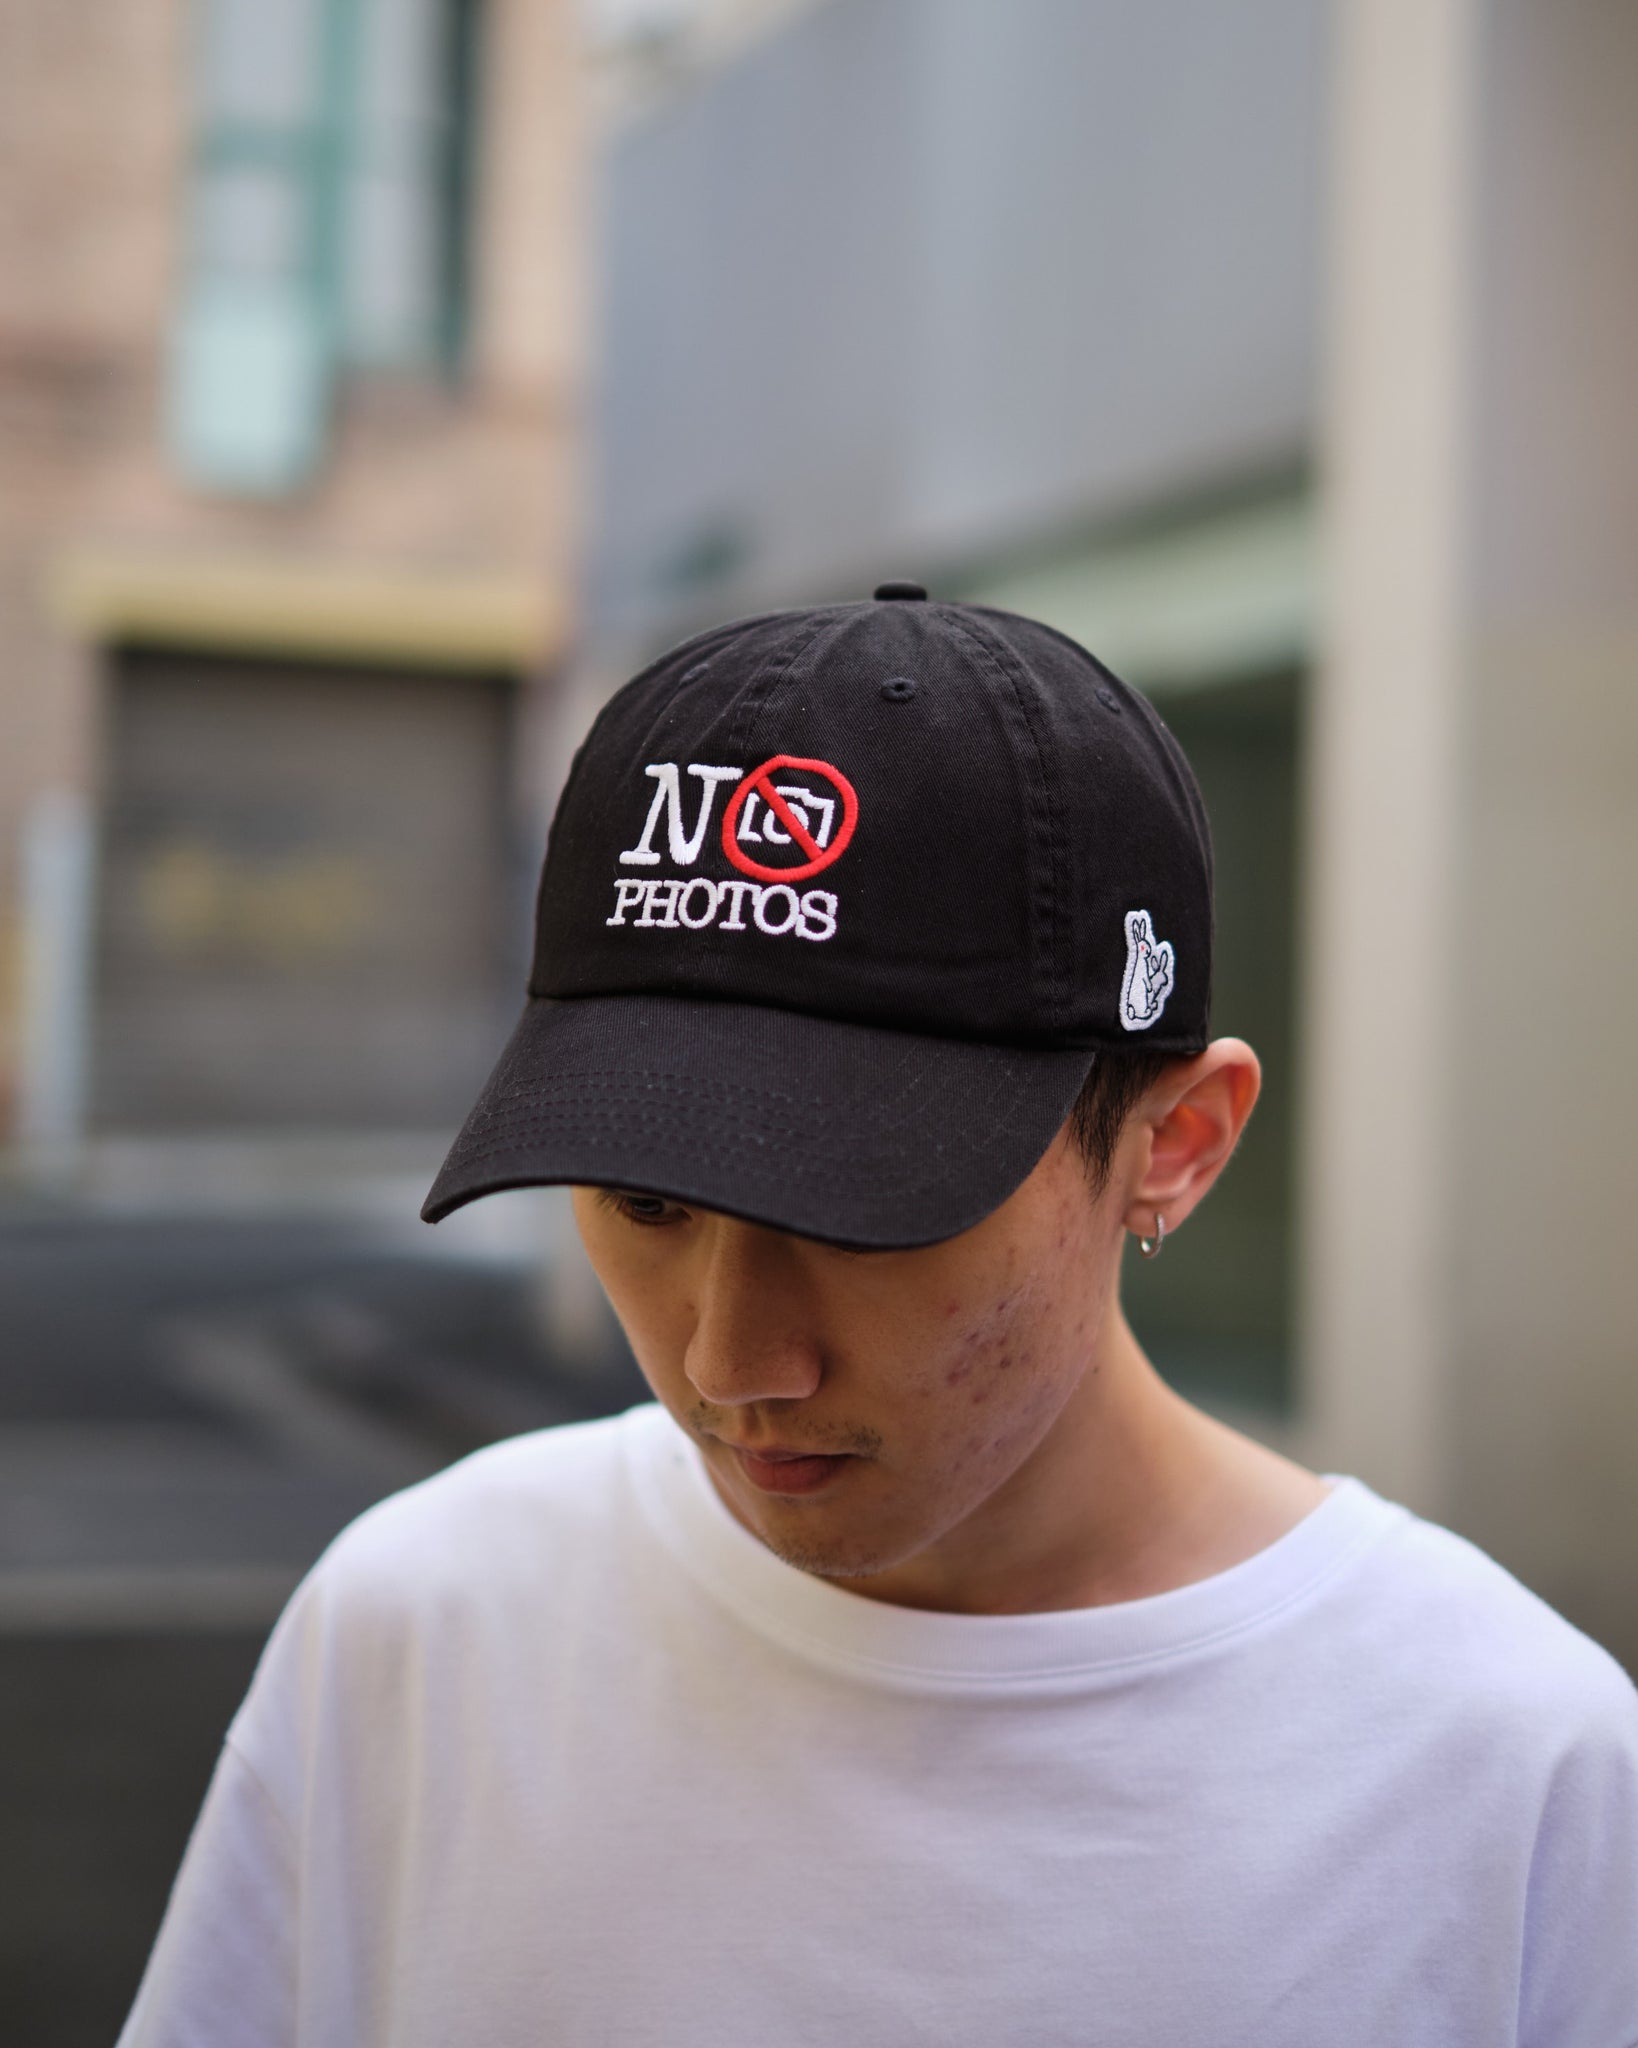 FR2 NEW NO PHOTOS EMBROIDERY SIX PANEL CAP